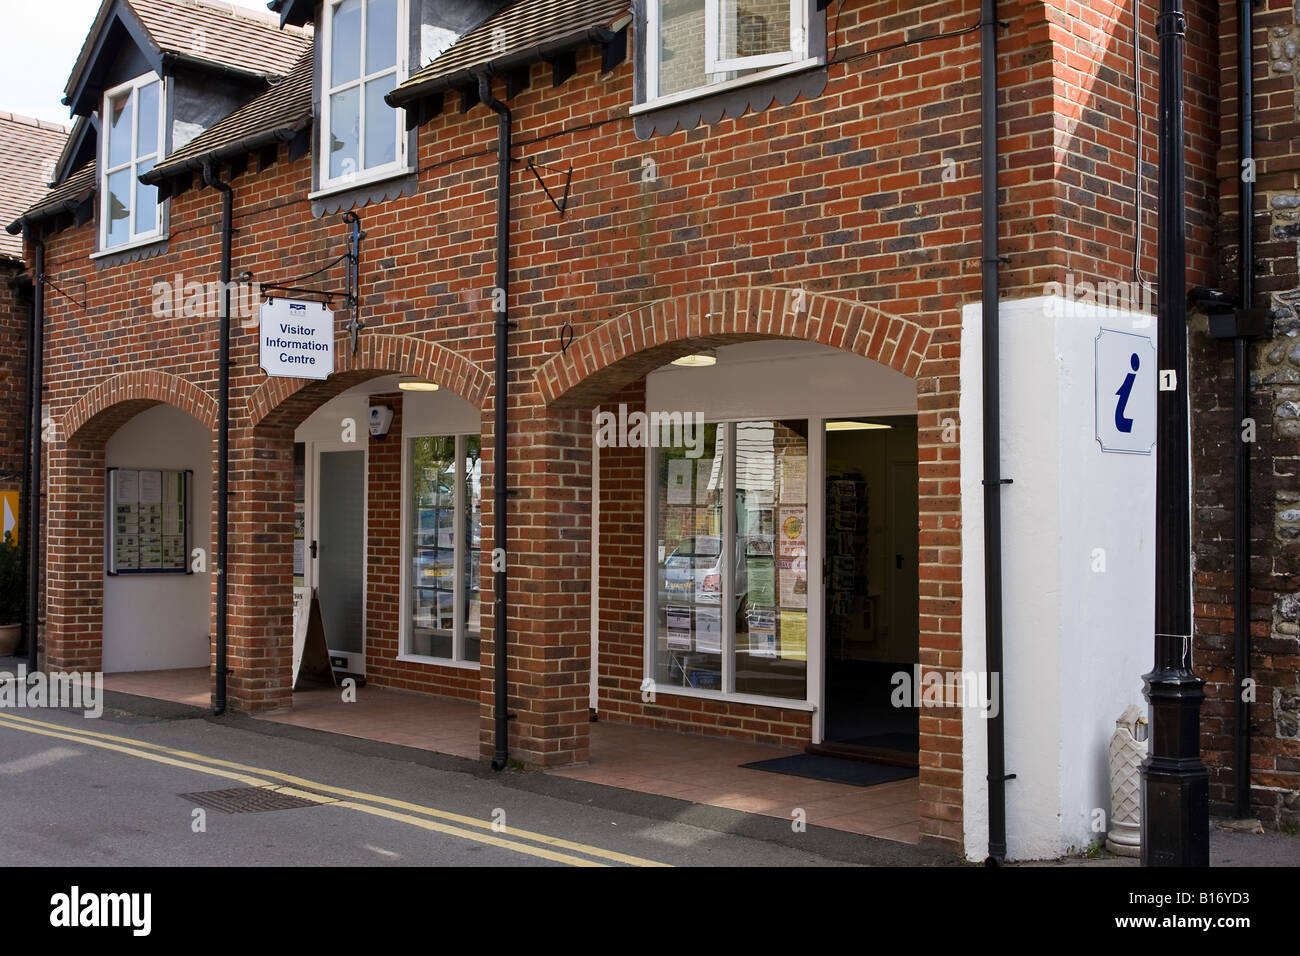 Tourist Information Centre in Arundel, Sussex, England - Stock Image